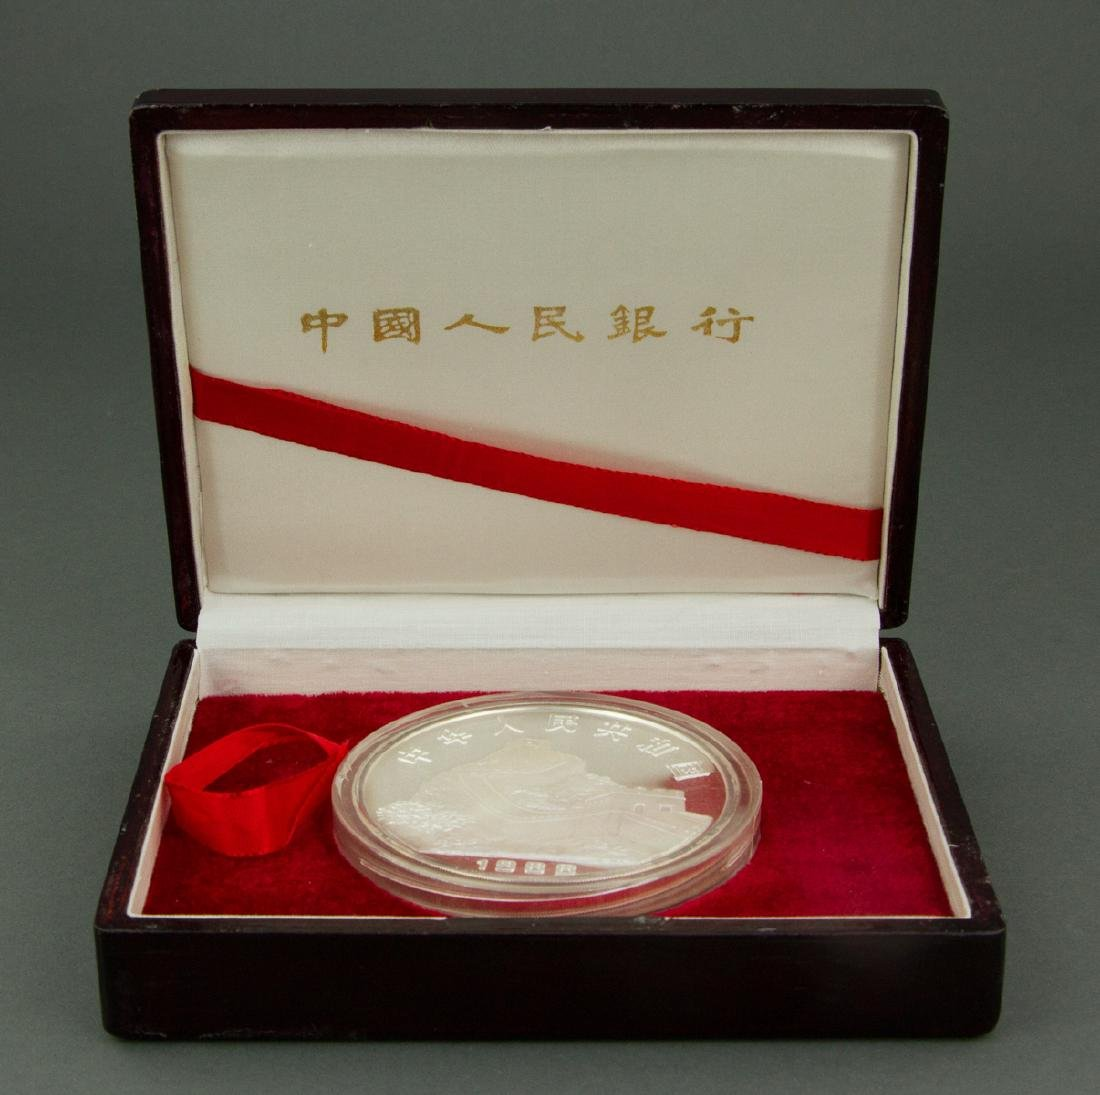 Chinese Large Silver Coin 100 Yuan w/ Certificate